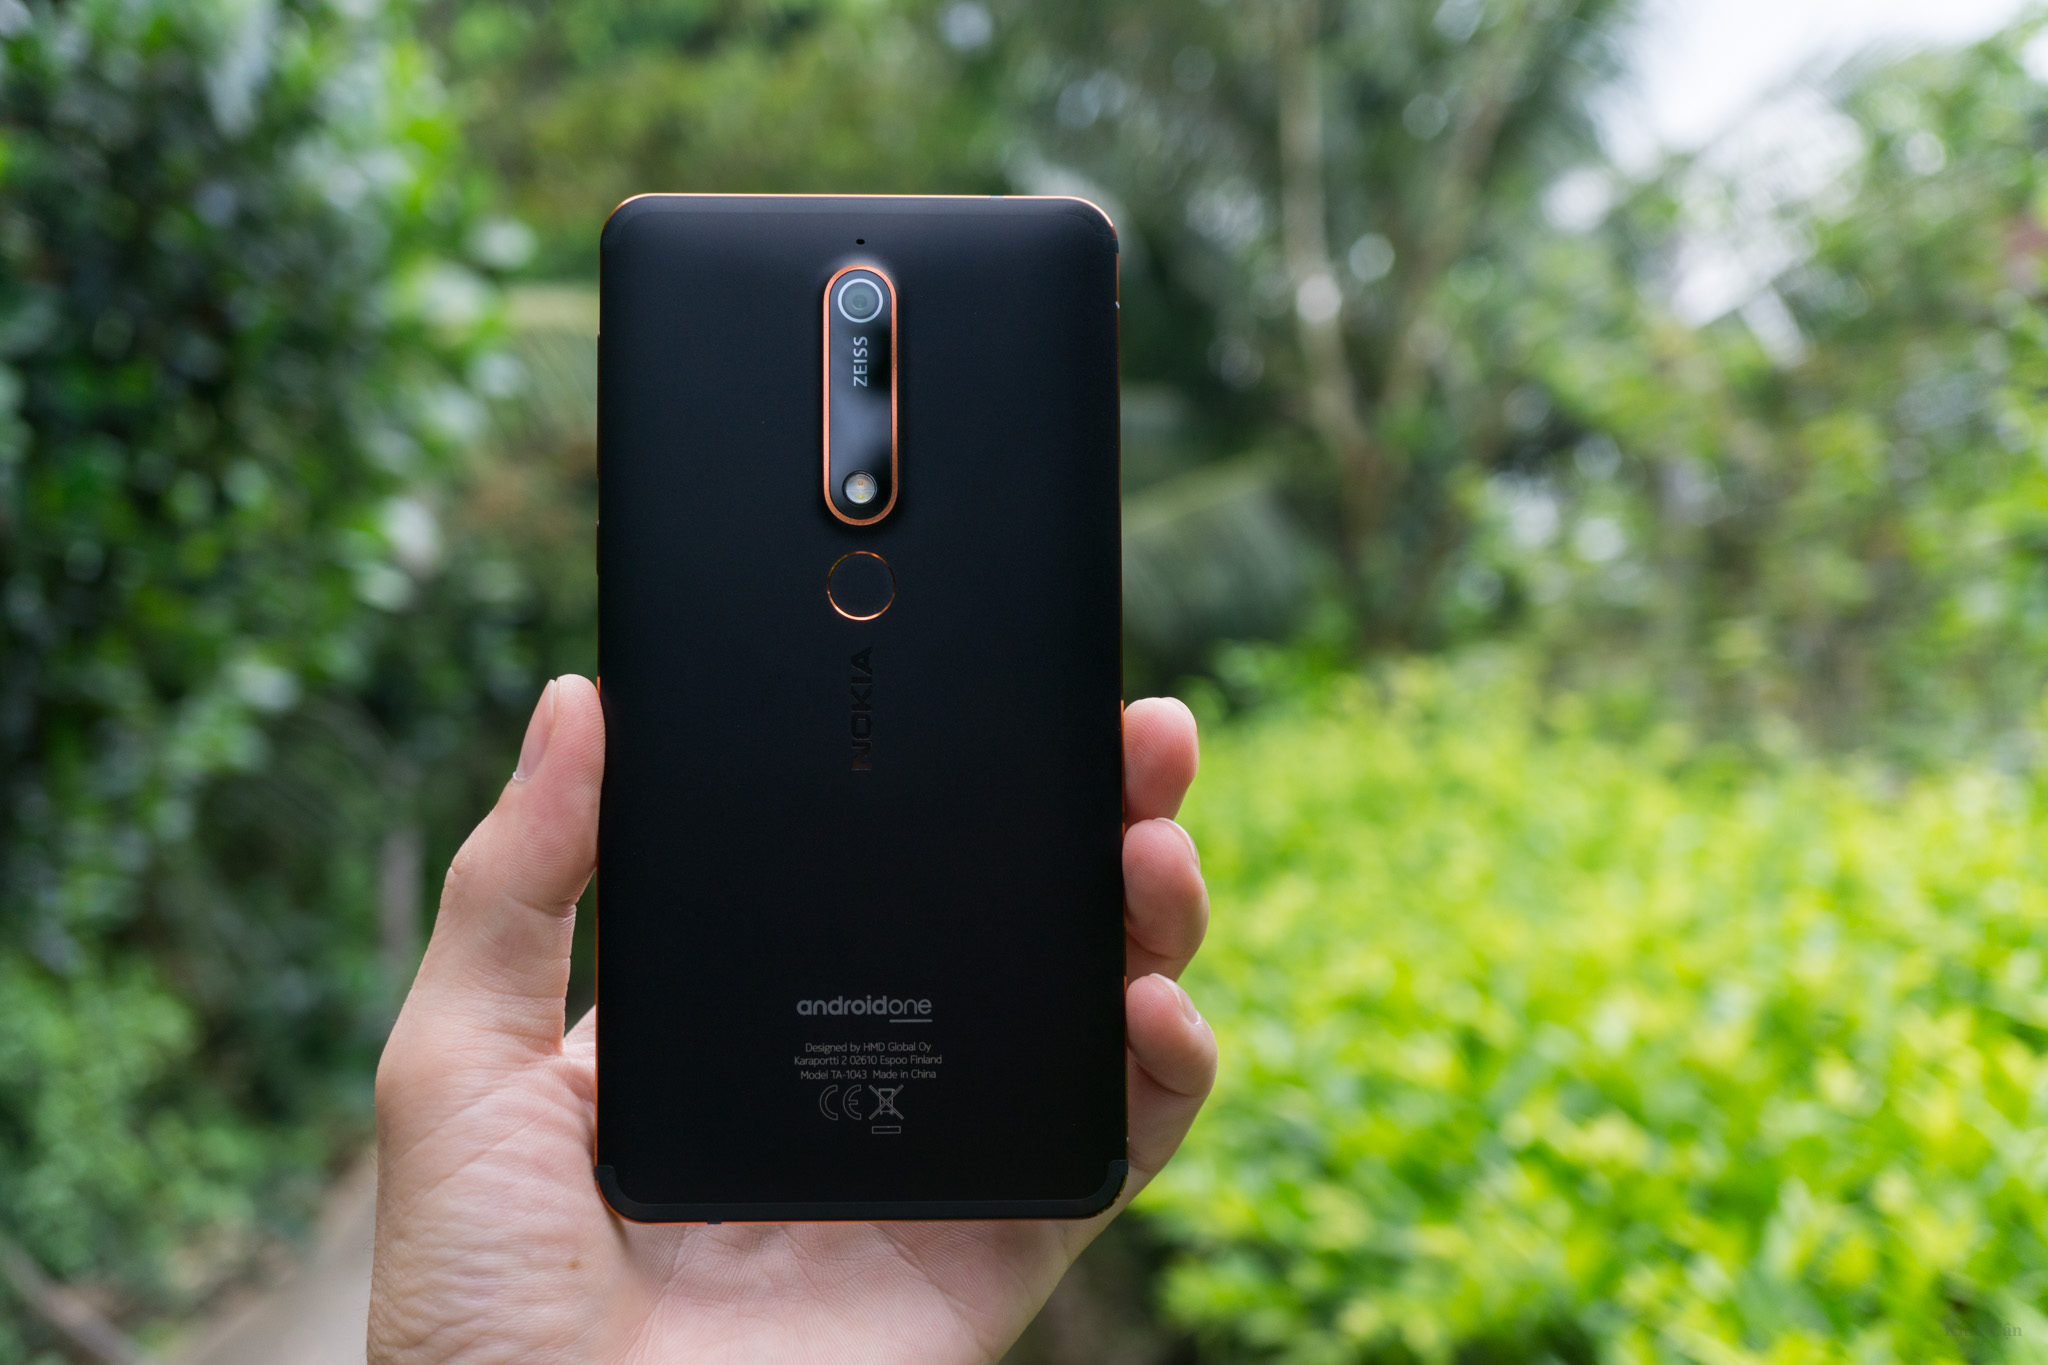 Android P Nokia 6 mới-8.jpg